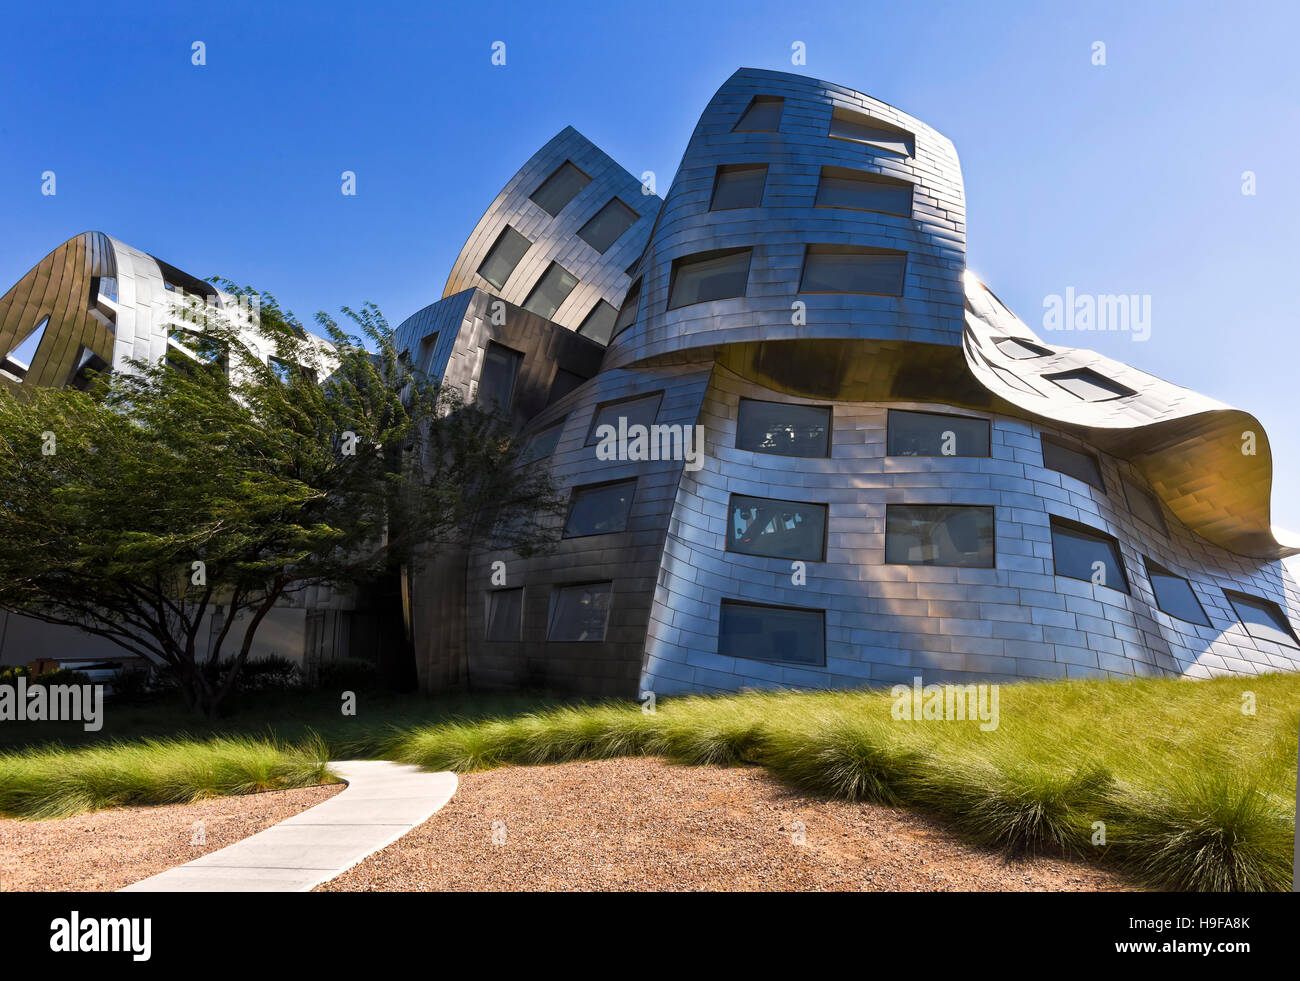 Cleveland Clinic, Lou Ruvo Center for Brain Health building exterior architecture in Las Vegas, Nevada - Stock Image